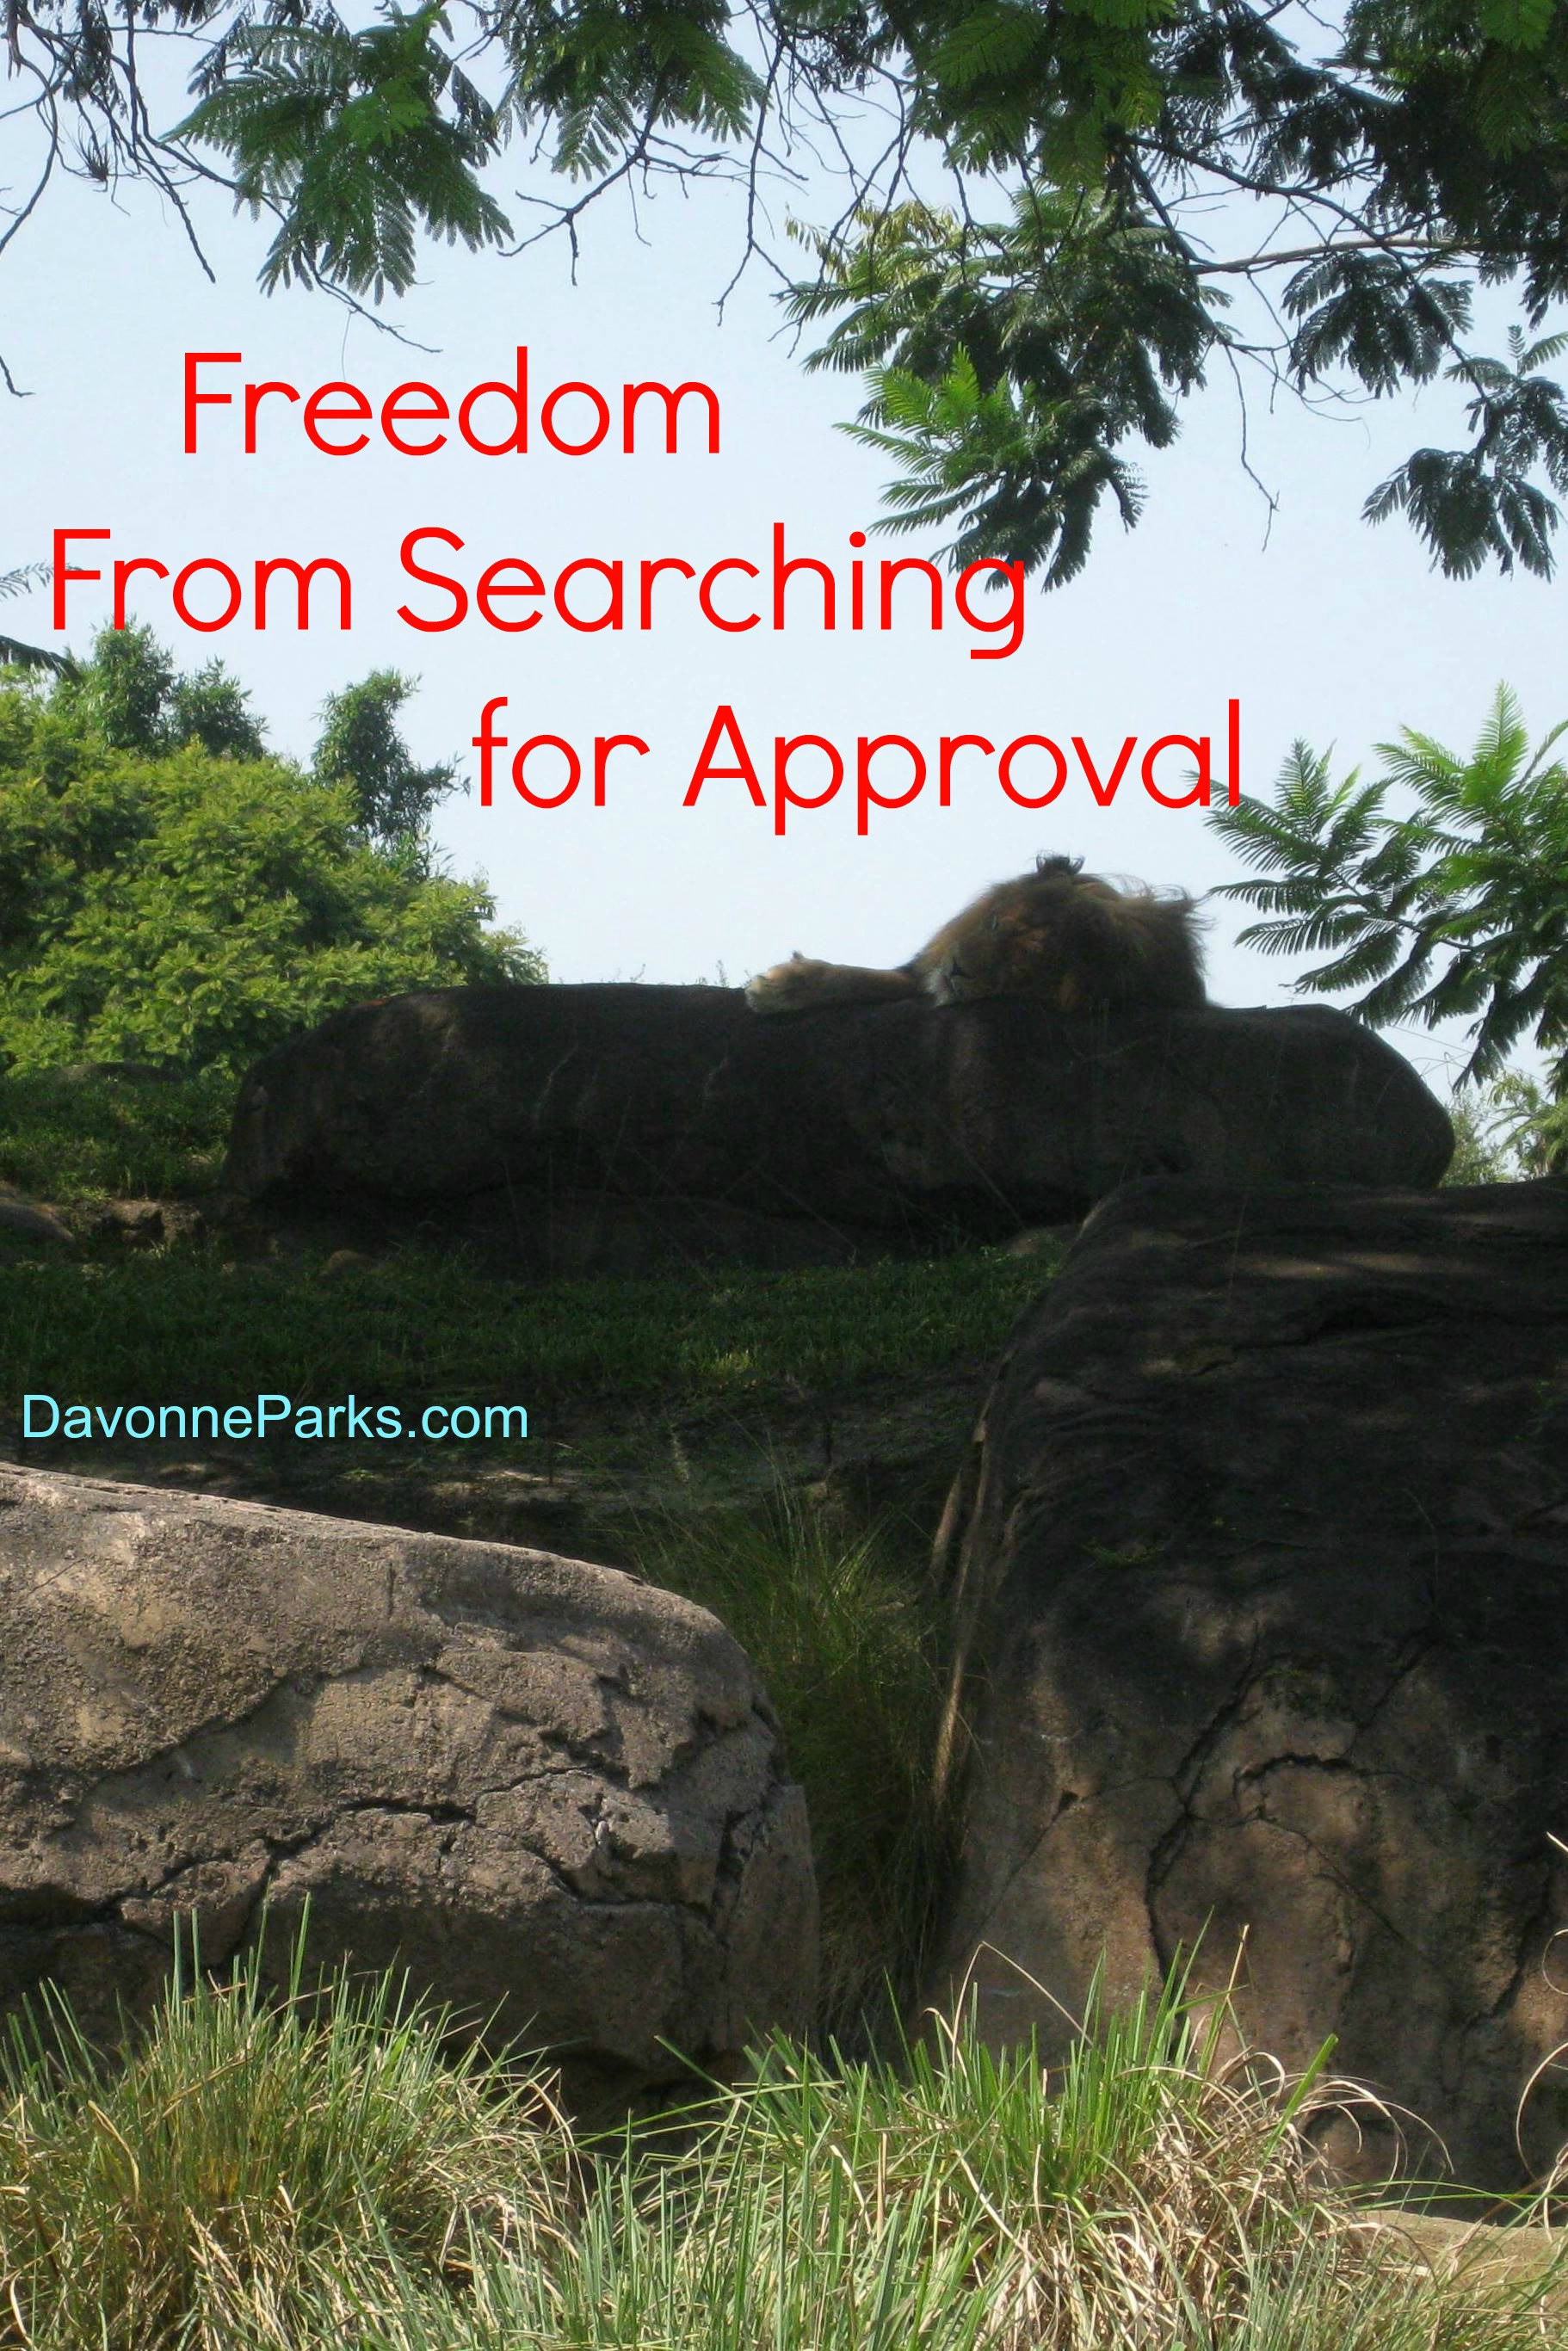 Freedom from Searching for Approval